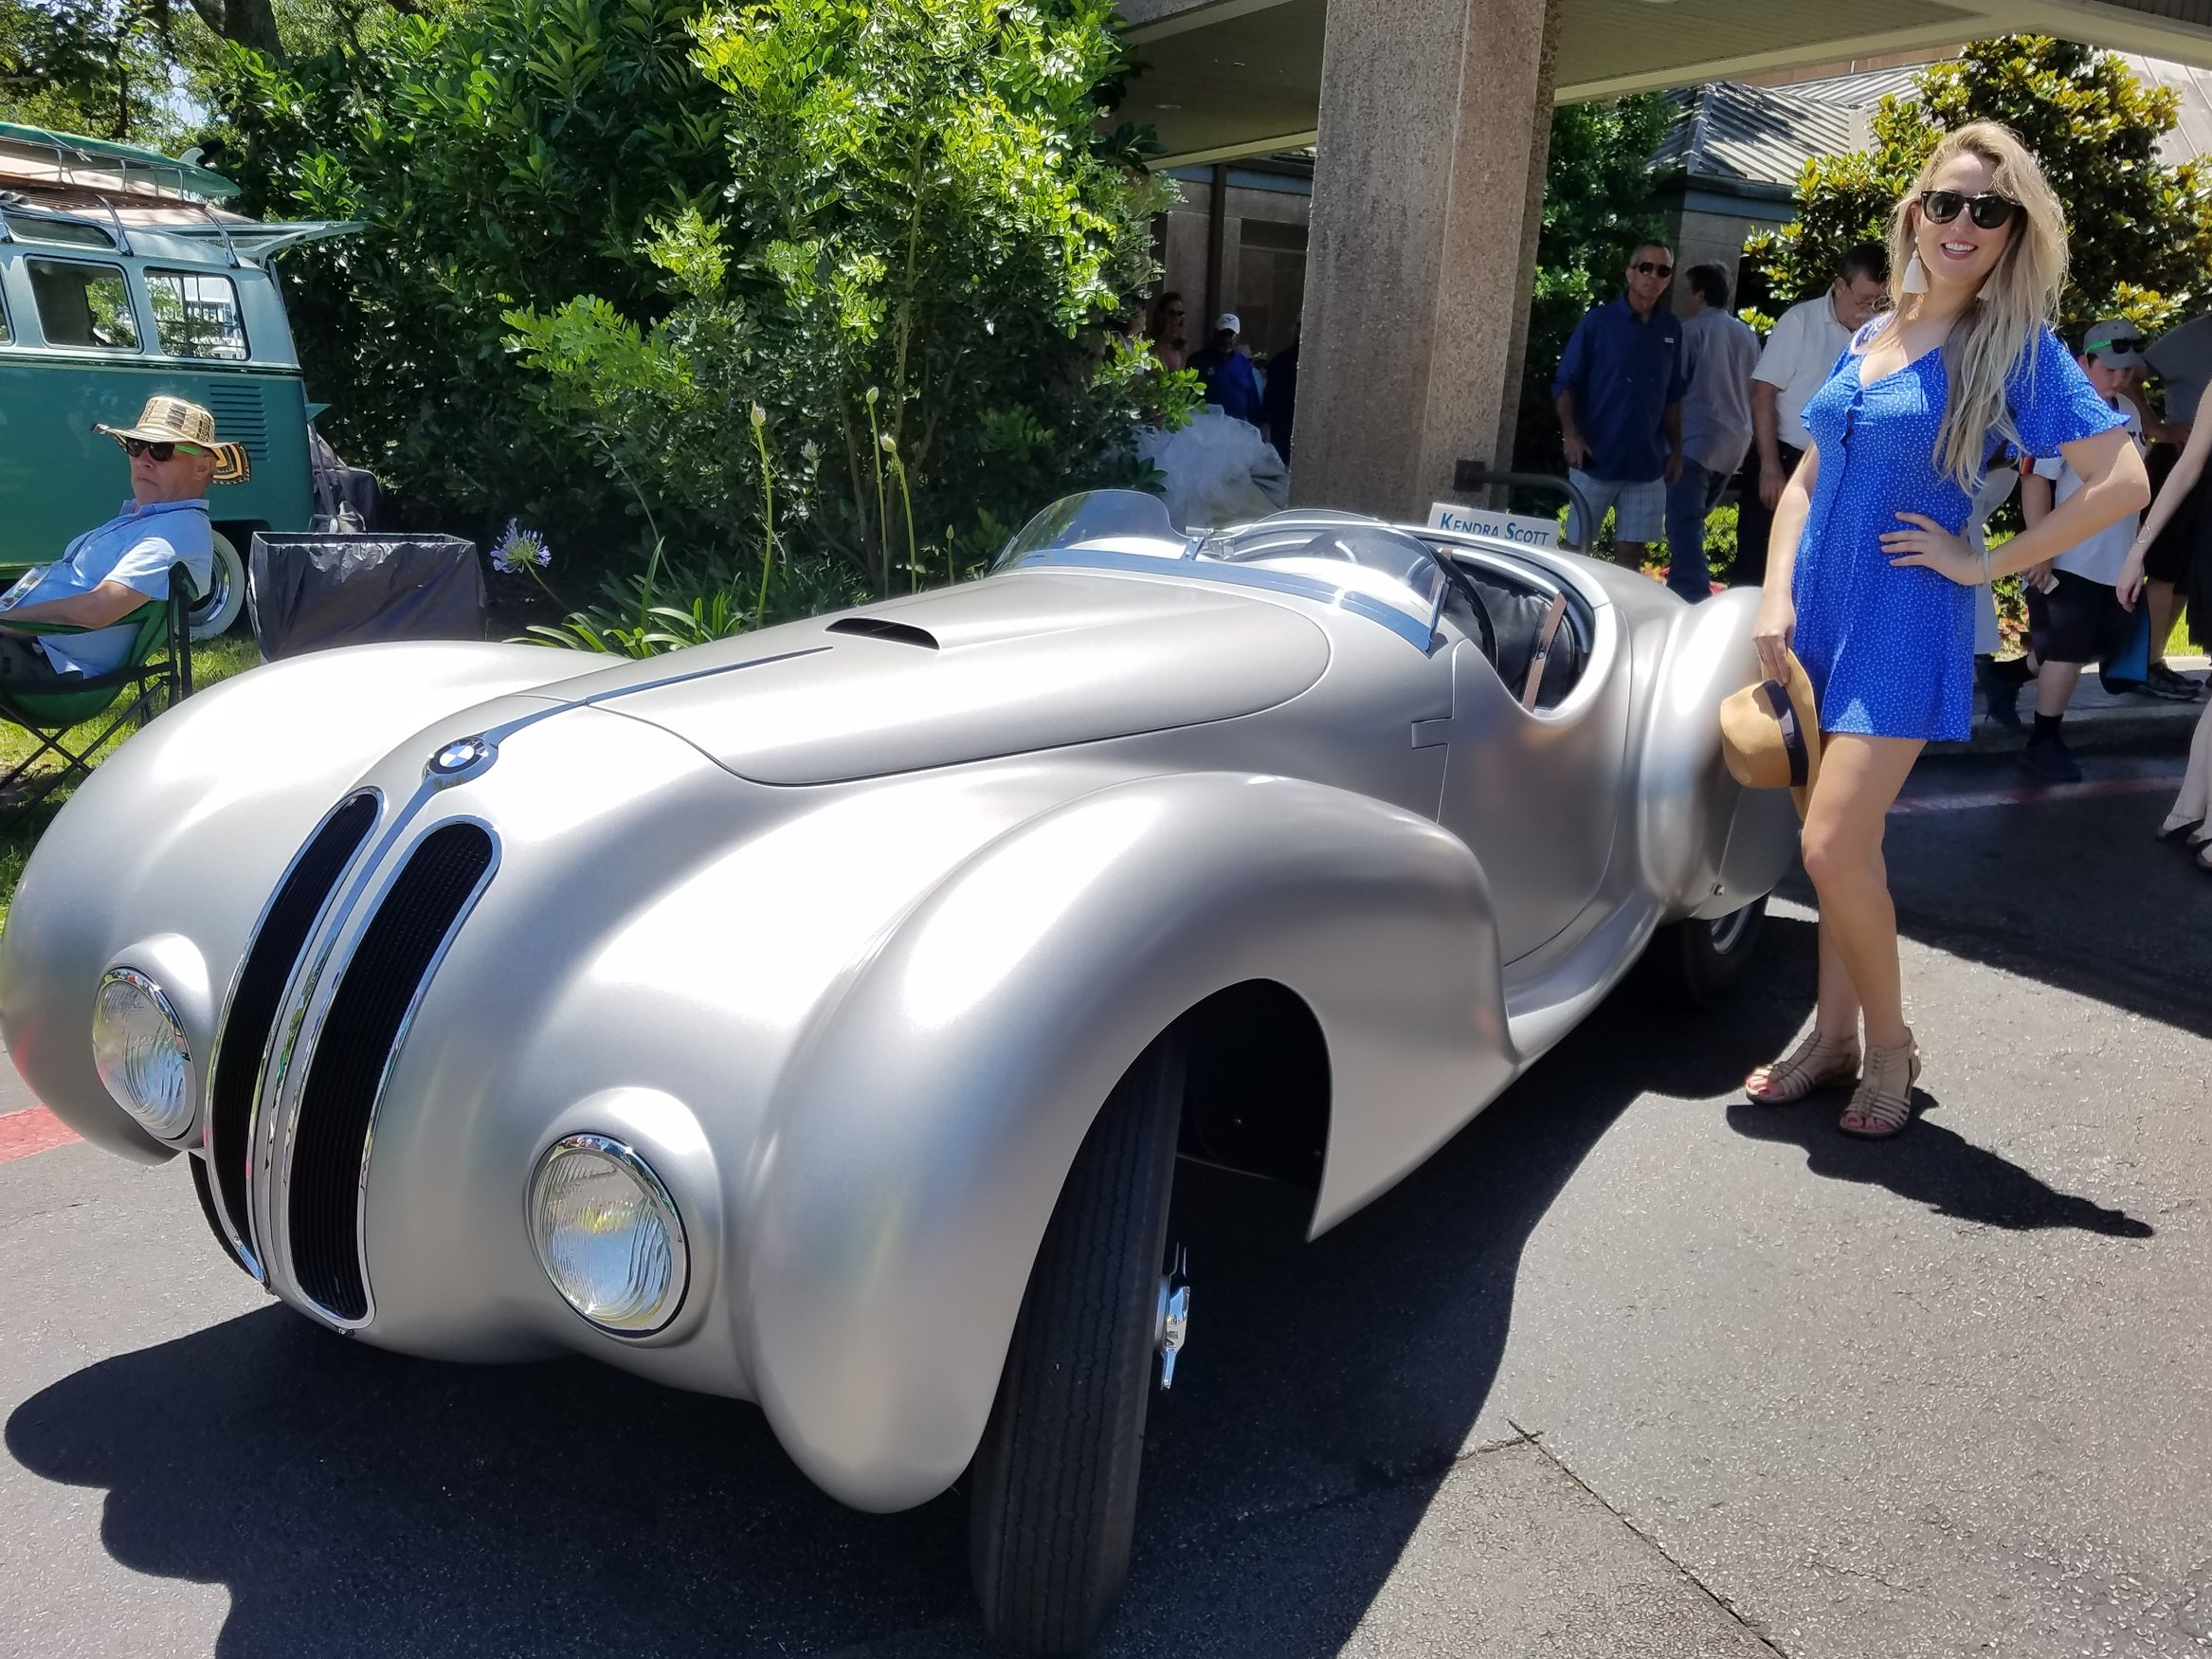 1937 BMW 328 Roadster + The Bad Blonde